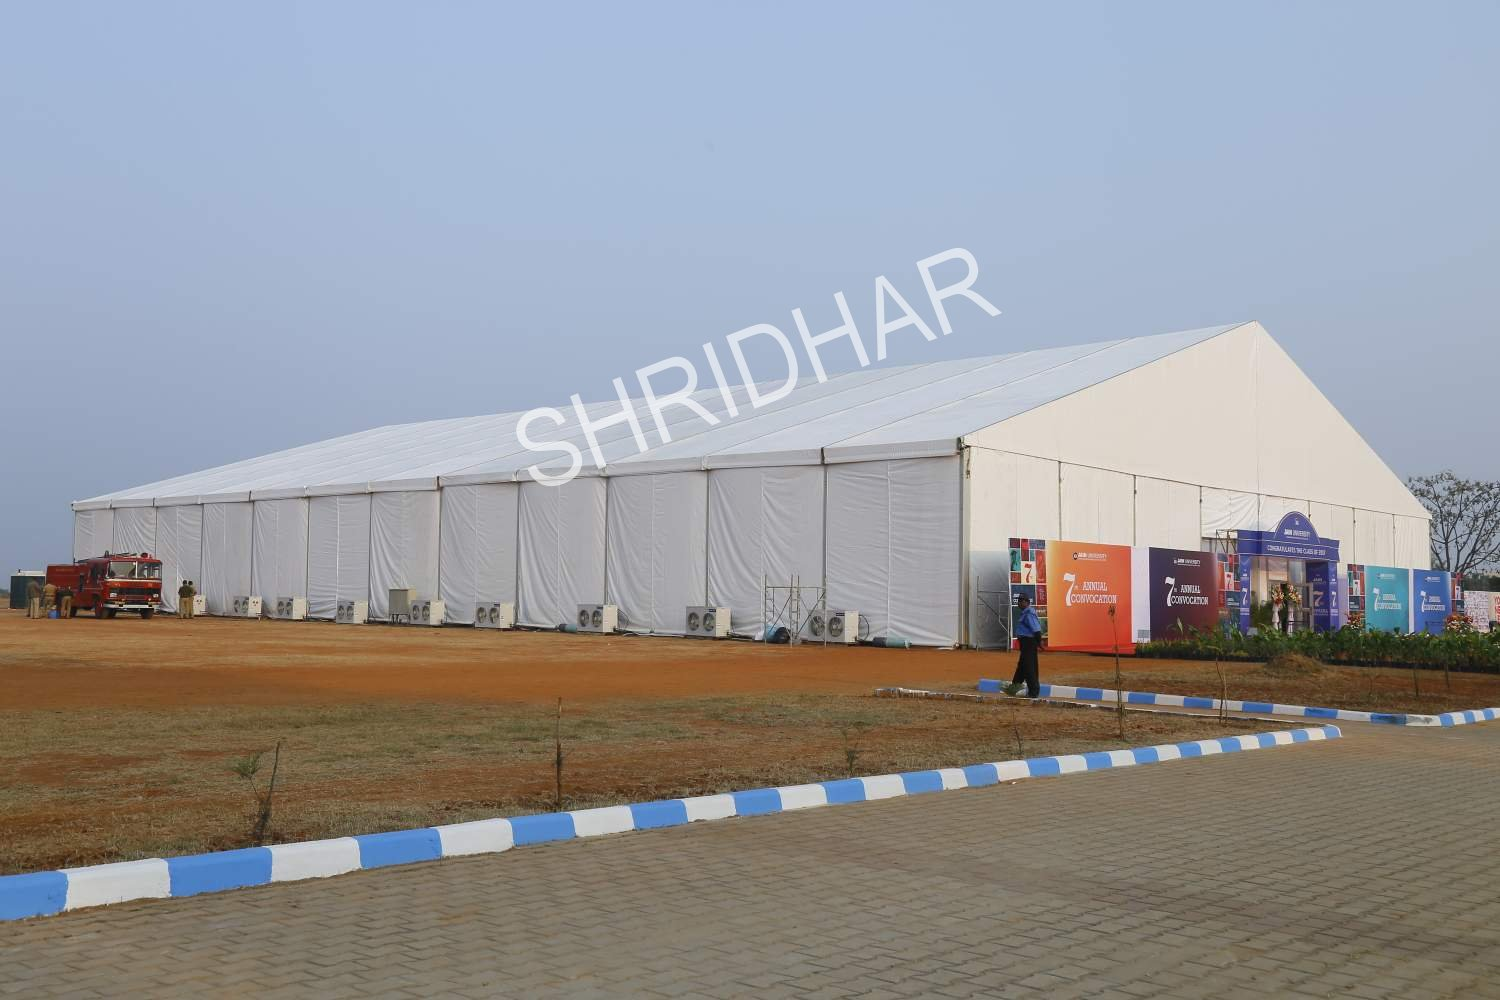 german tents aluminium tents for rent in bangalore shridhar tent house